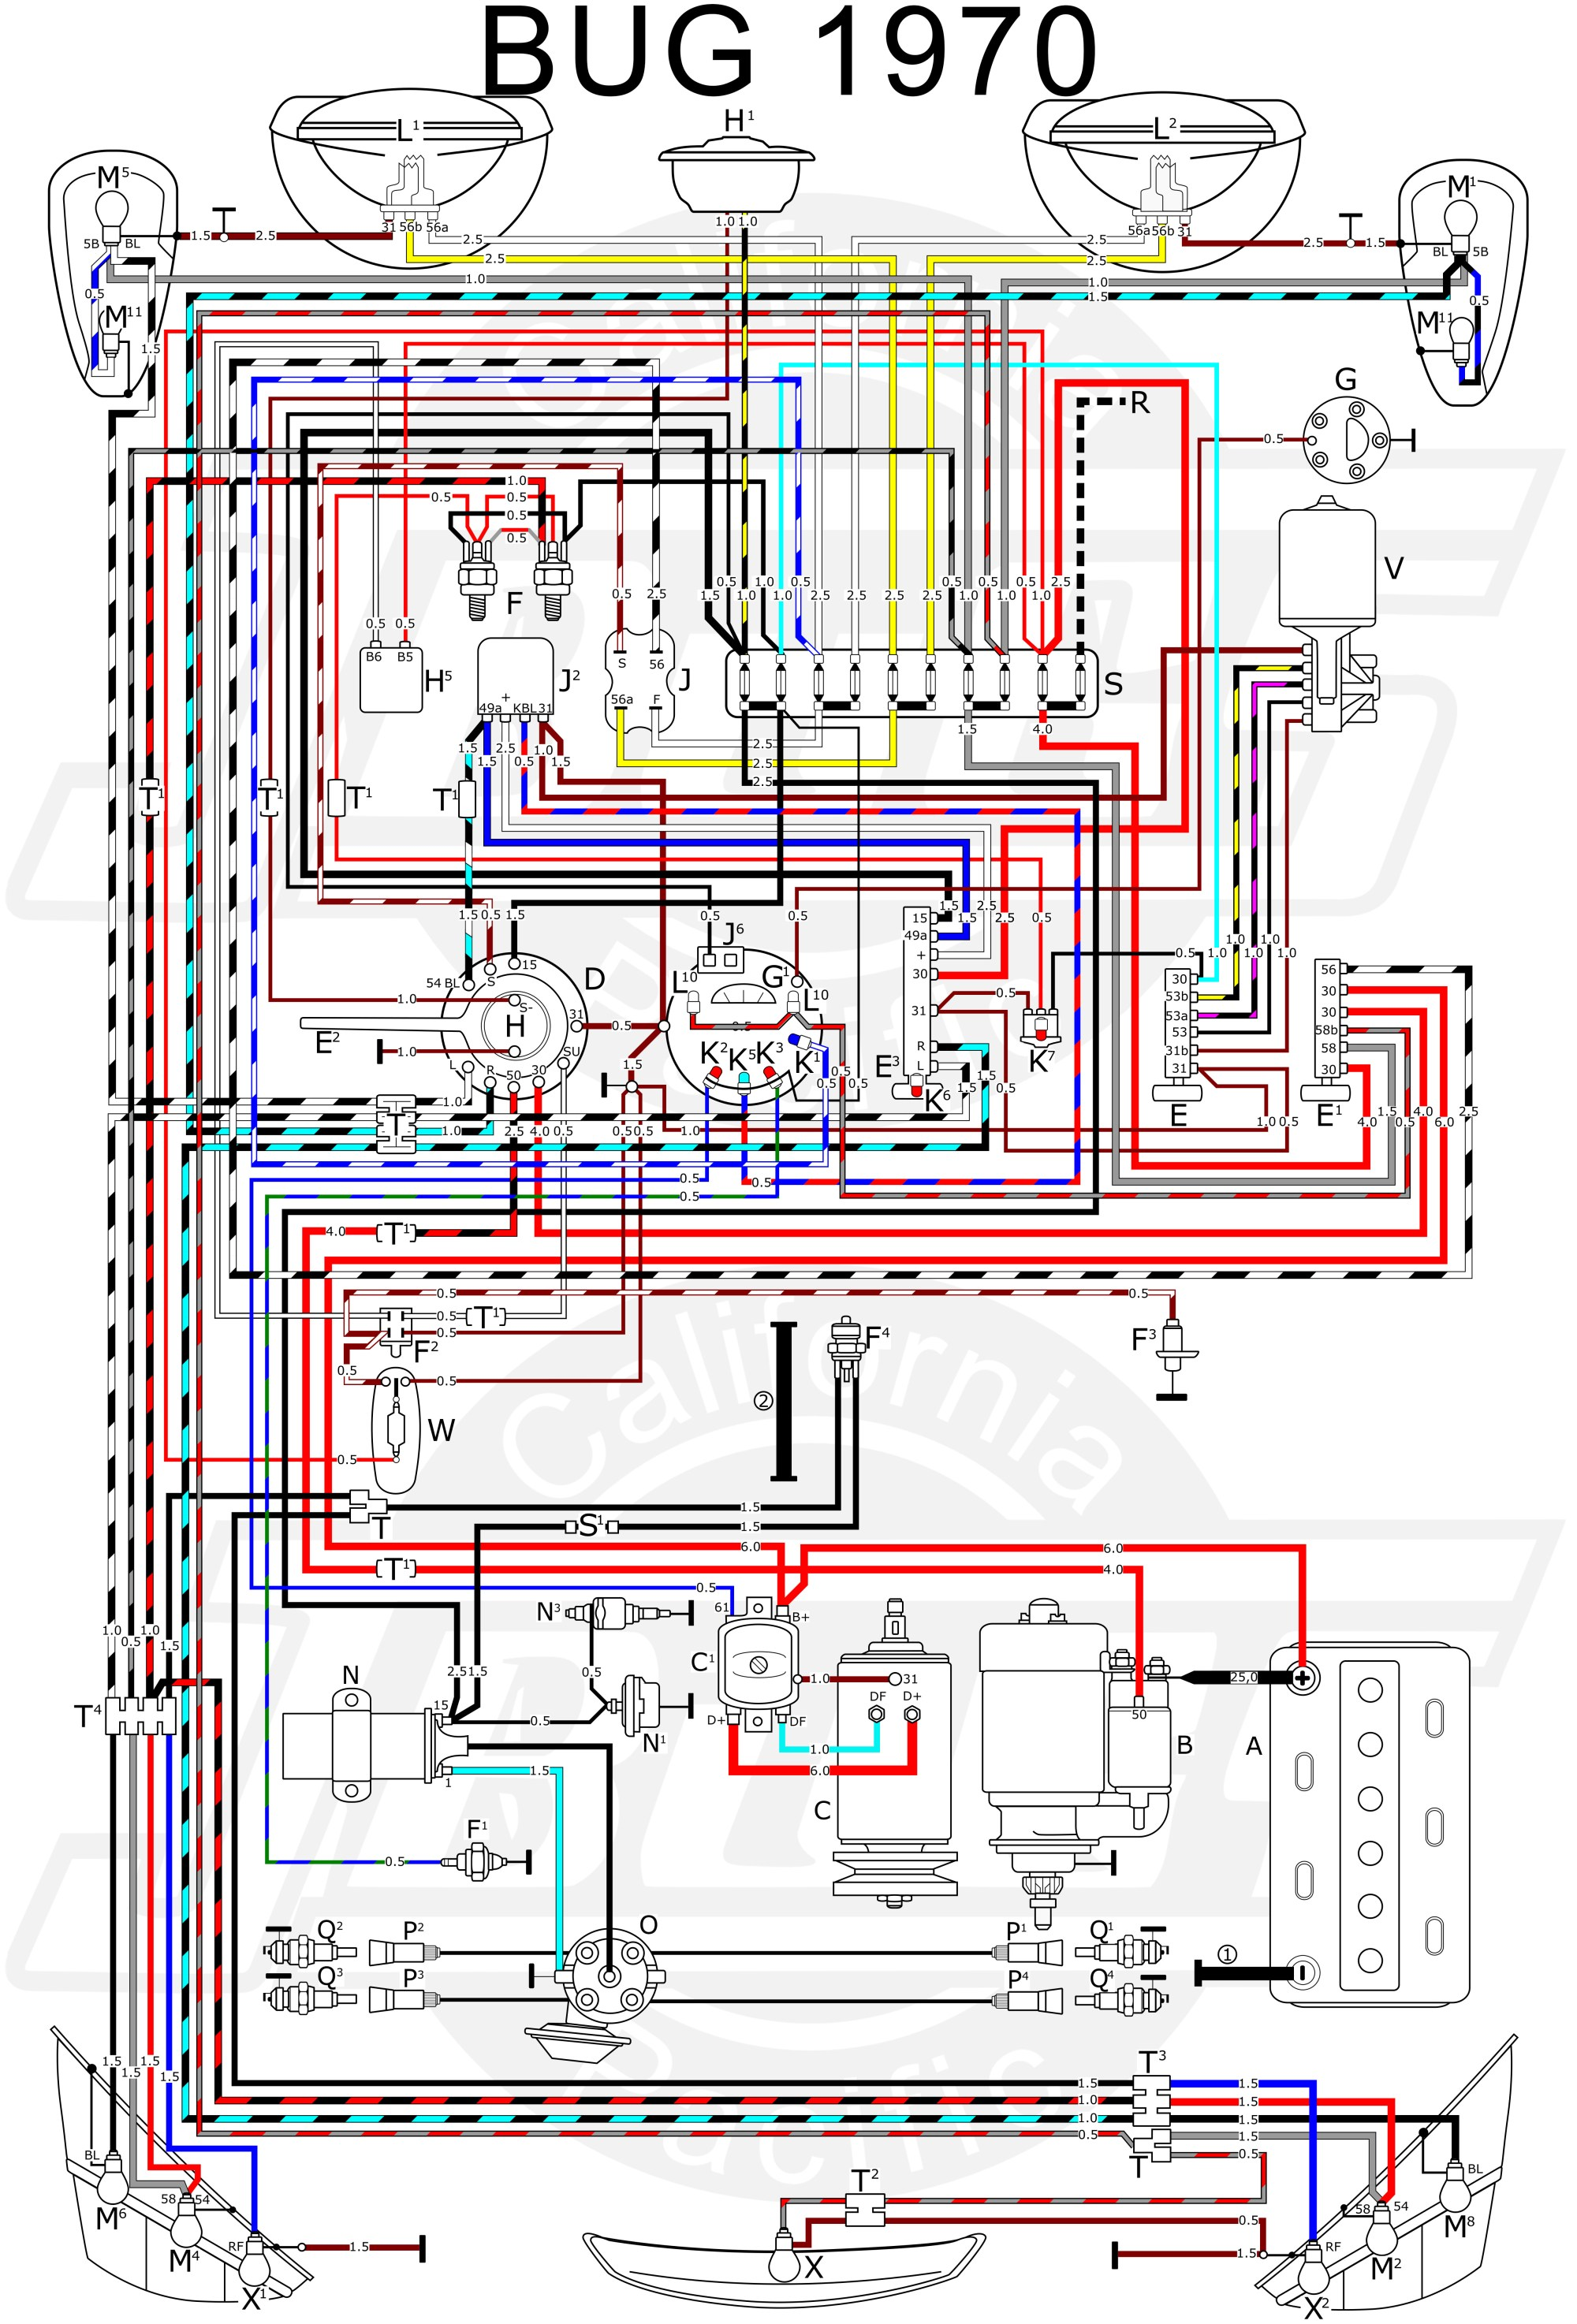 hight resolution of 78 vw bus diagrams web about wiring diagram u2022 rh newcircuitdiagram today vw jetta 2 0 engine